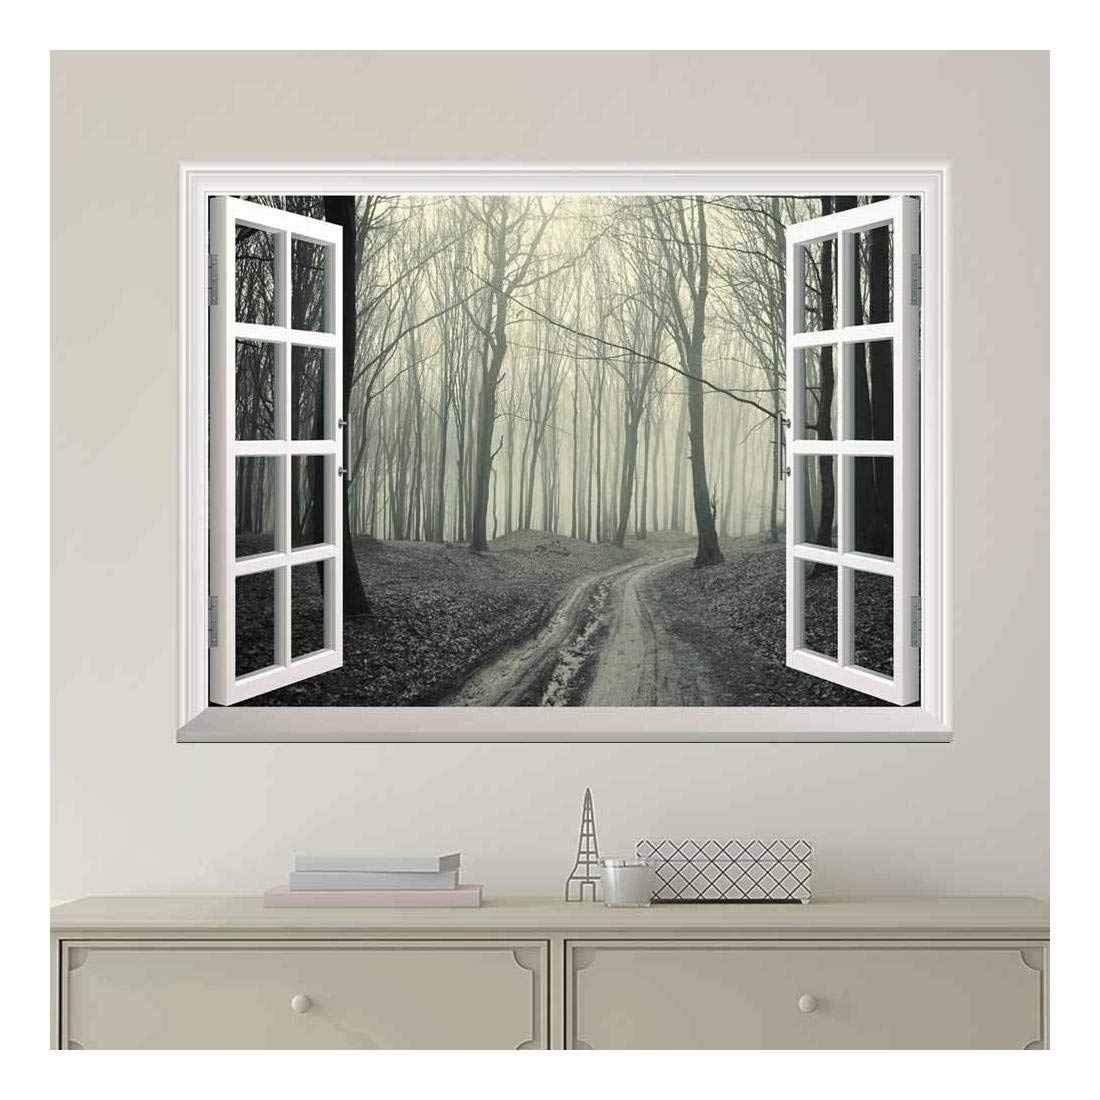 wall26 Modern White Window Looking Out Into a Road that Leads to a Dark Foggy Forest - Wall Mural, Removable Sticker, Home Decor - 24x32 inches